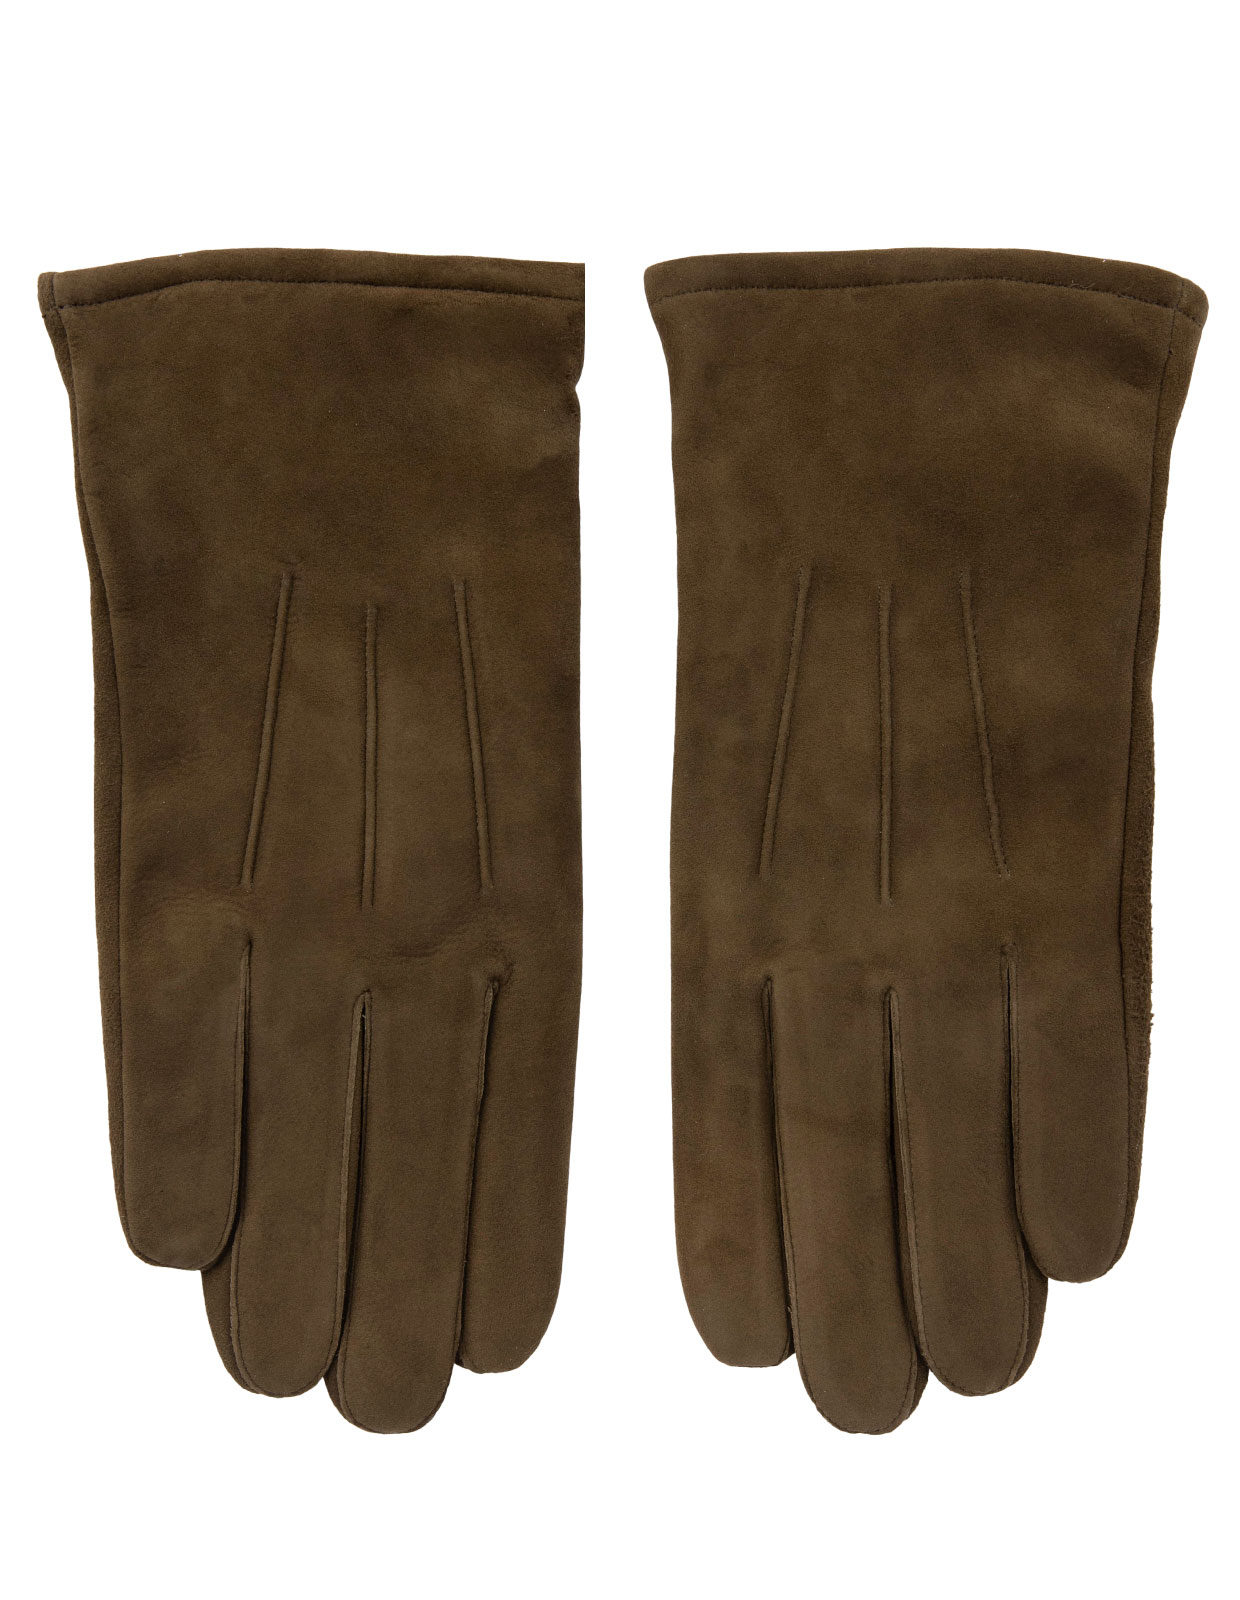 Goatsuede Gloves Olive Green Stl 9